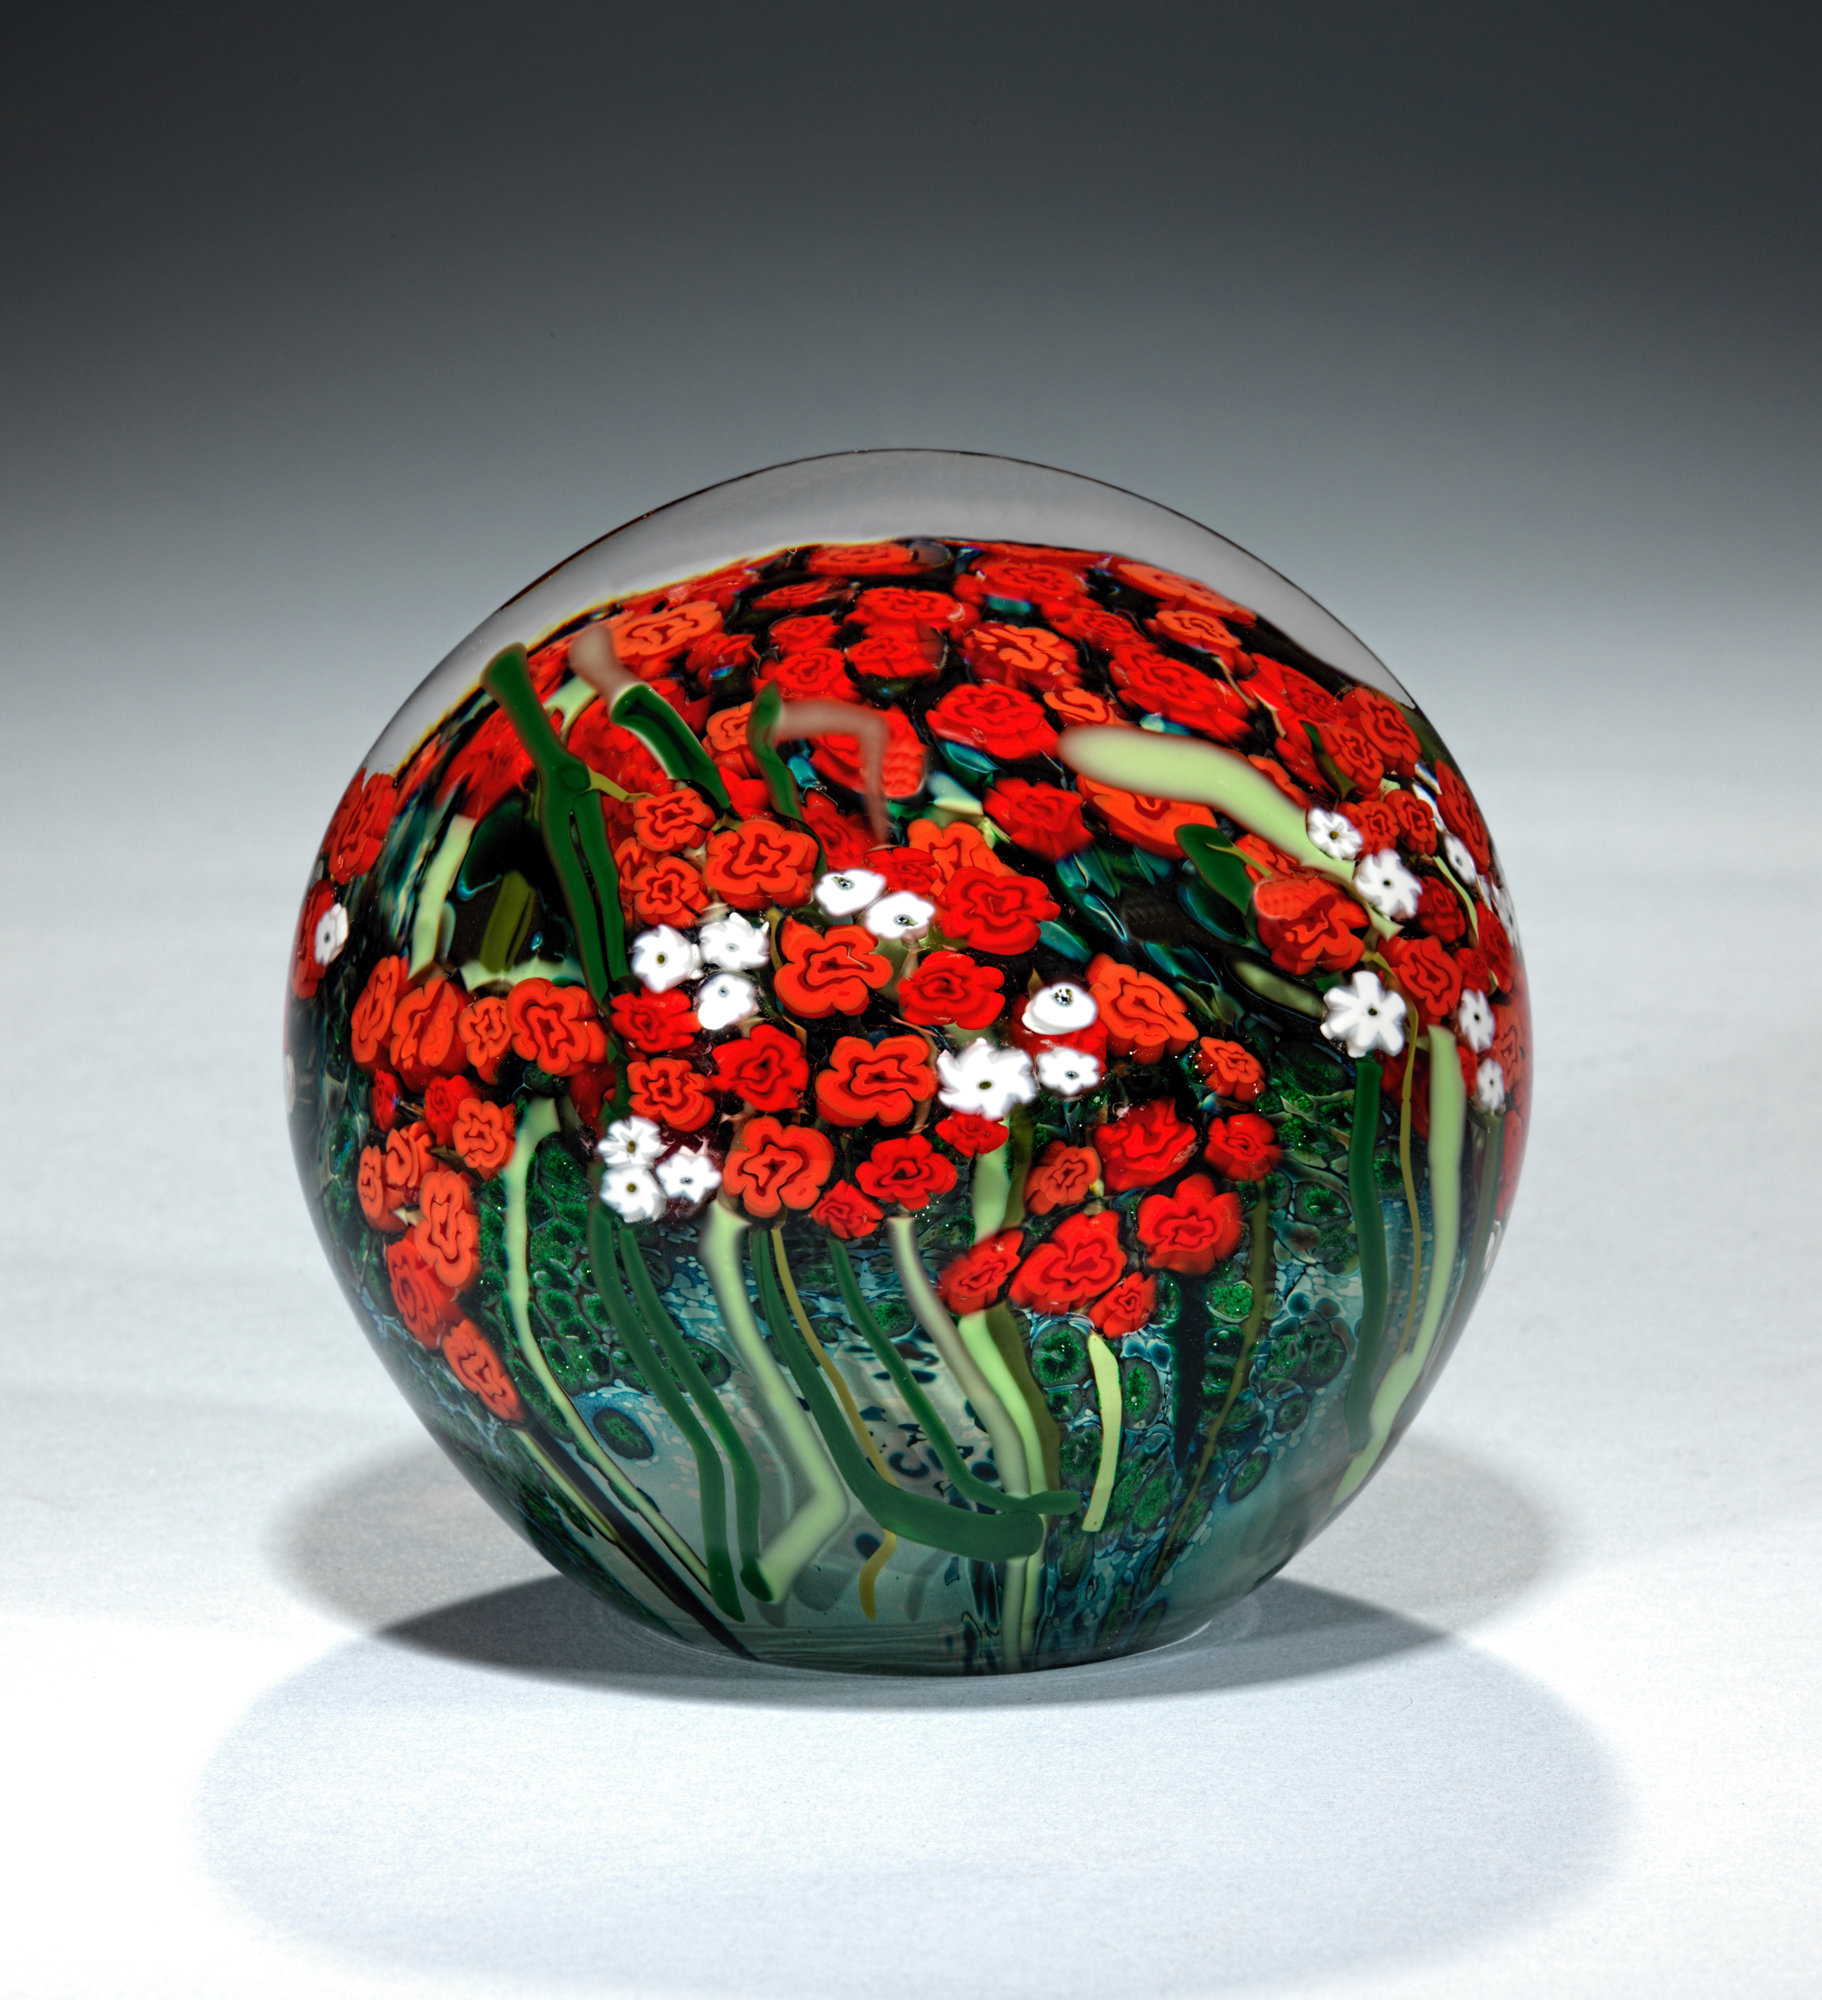 Large Red Rose And Baby S Breath Bouquet Paperweight By Shawn Messenger Art Glass Paperweight Artful Home